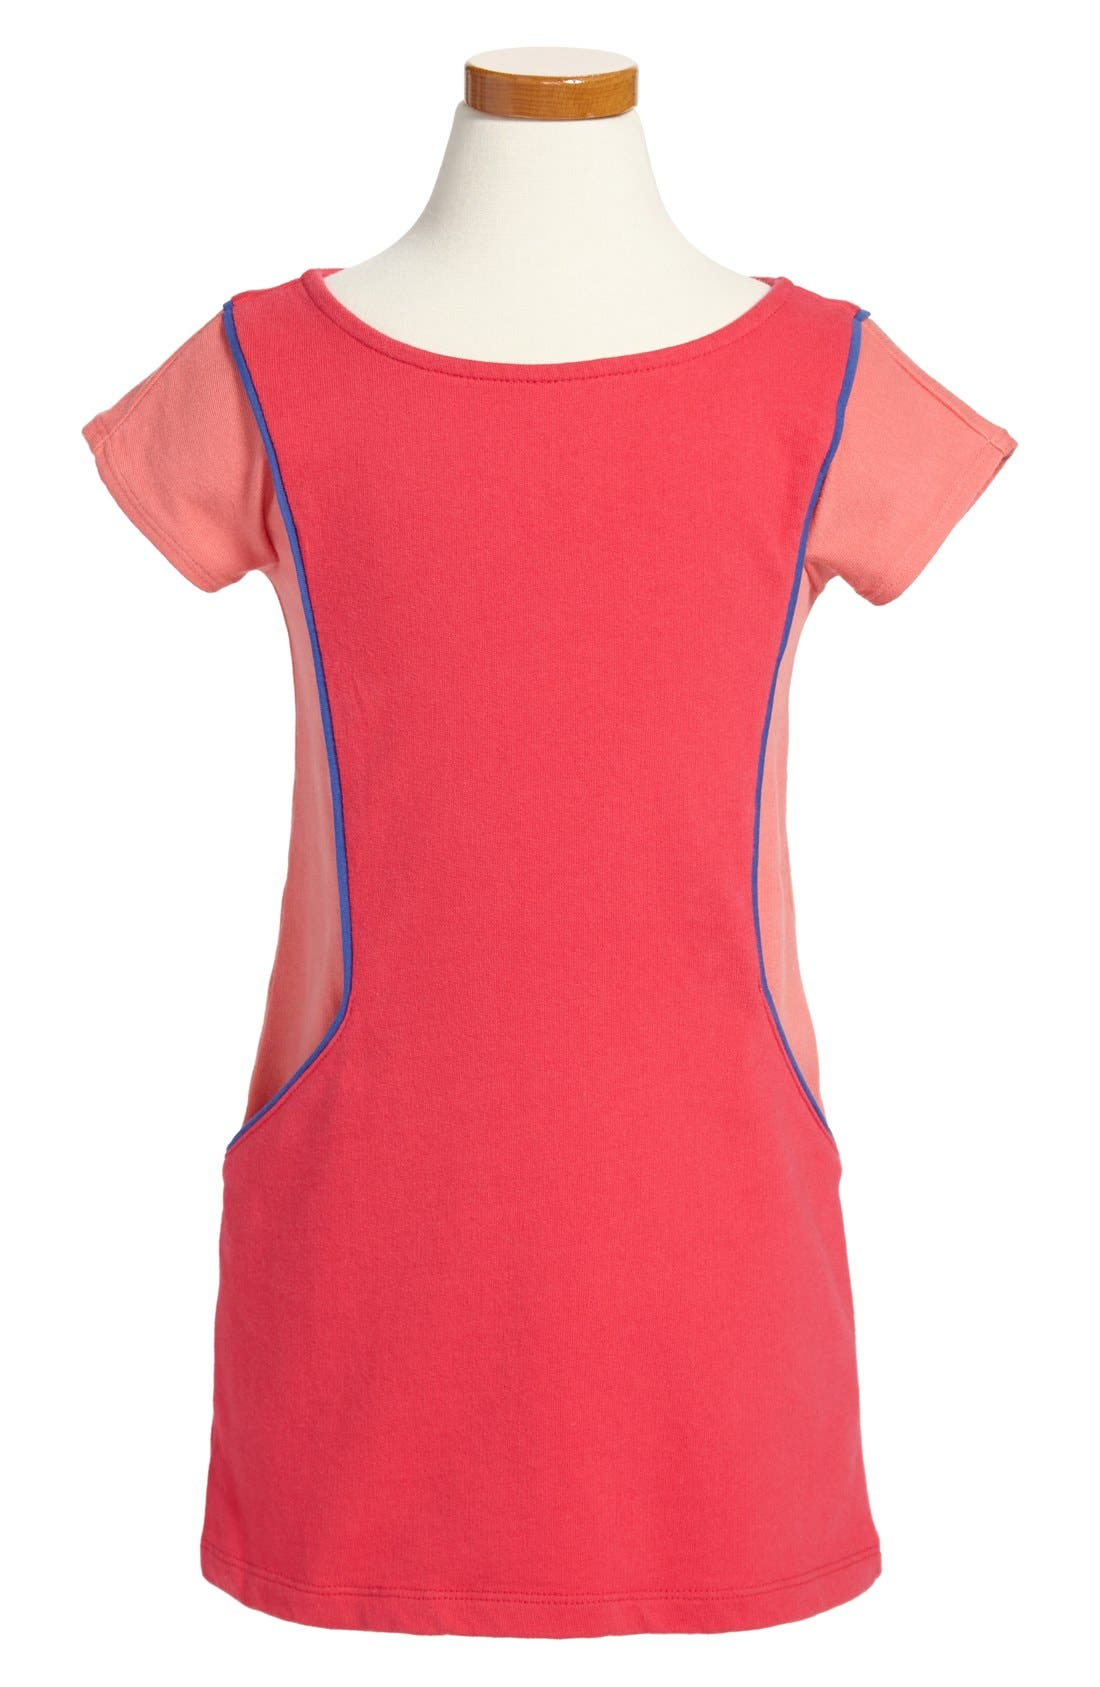 Alternate Image 1 Selected - Tea Collection 'Rabat' Colorblock Dress (Toddler Girls)